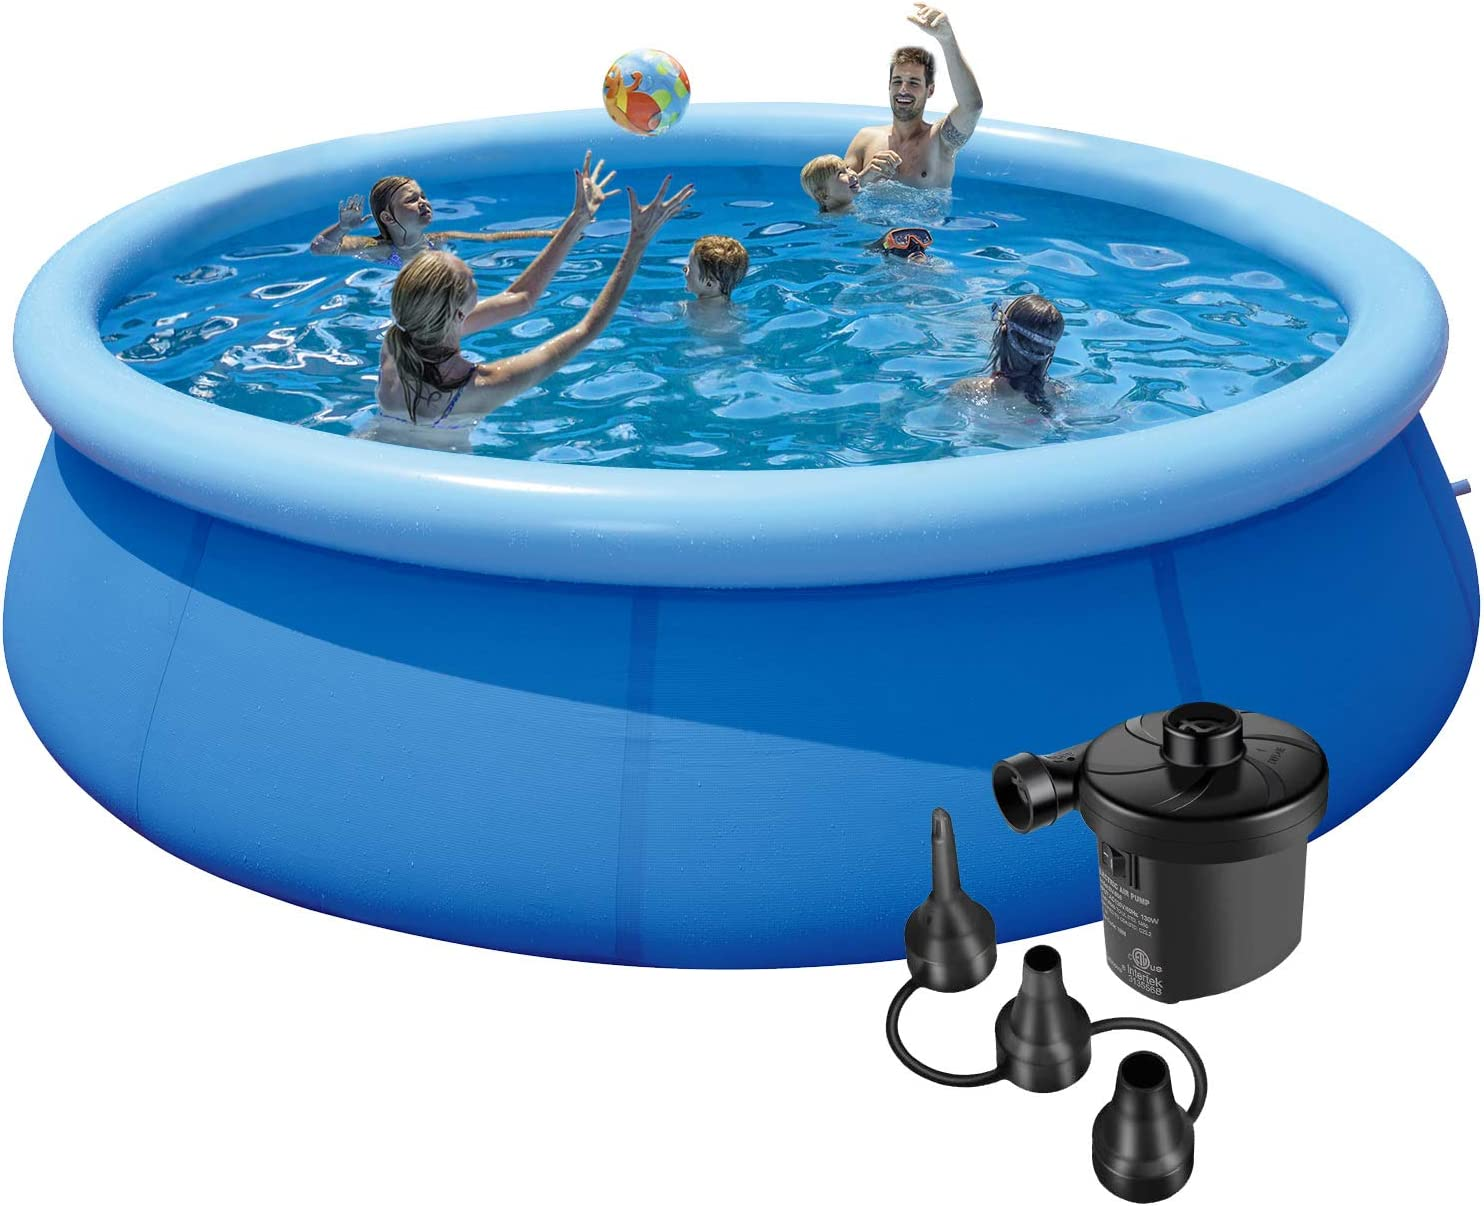 10ft Swimming Pools Above Ground Inflatable Pool With Air Pump In Funny Summer Quick Set Blow Up Swimming Pool For Family Outdoor Yard Garden Use Garden Outdoor